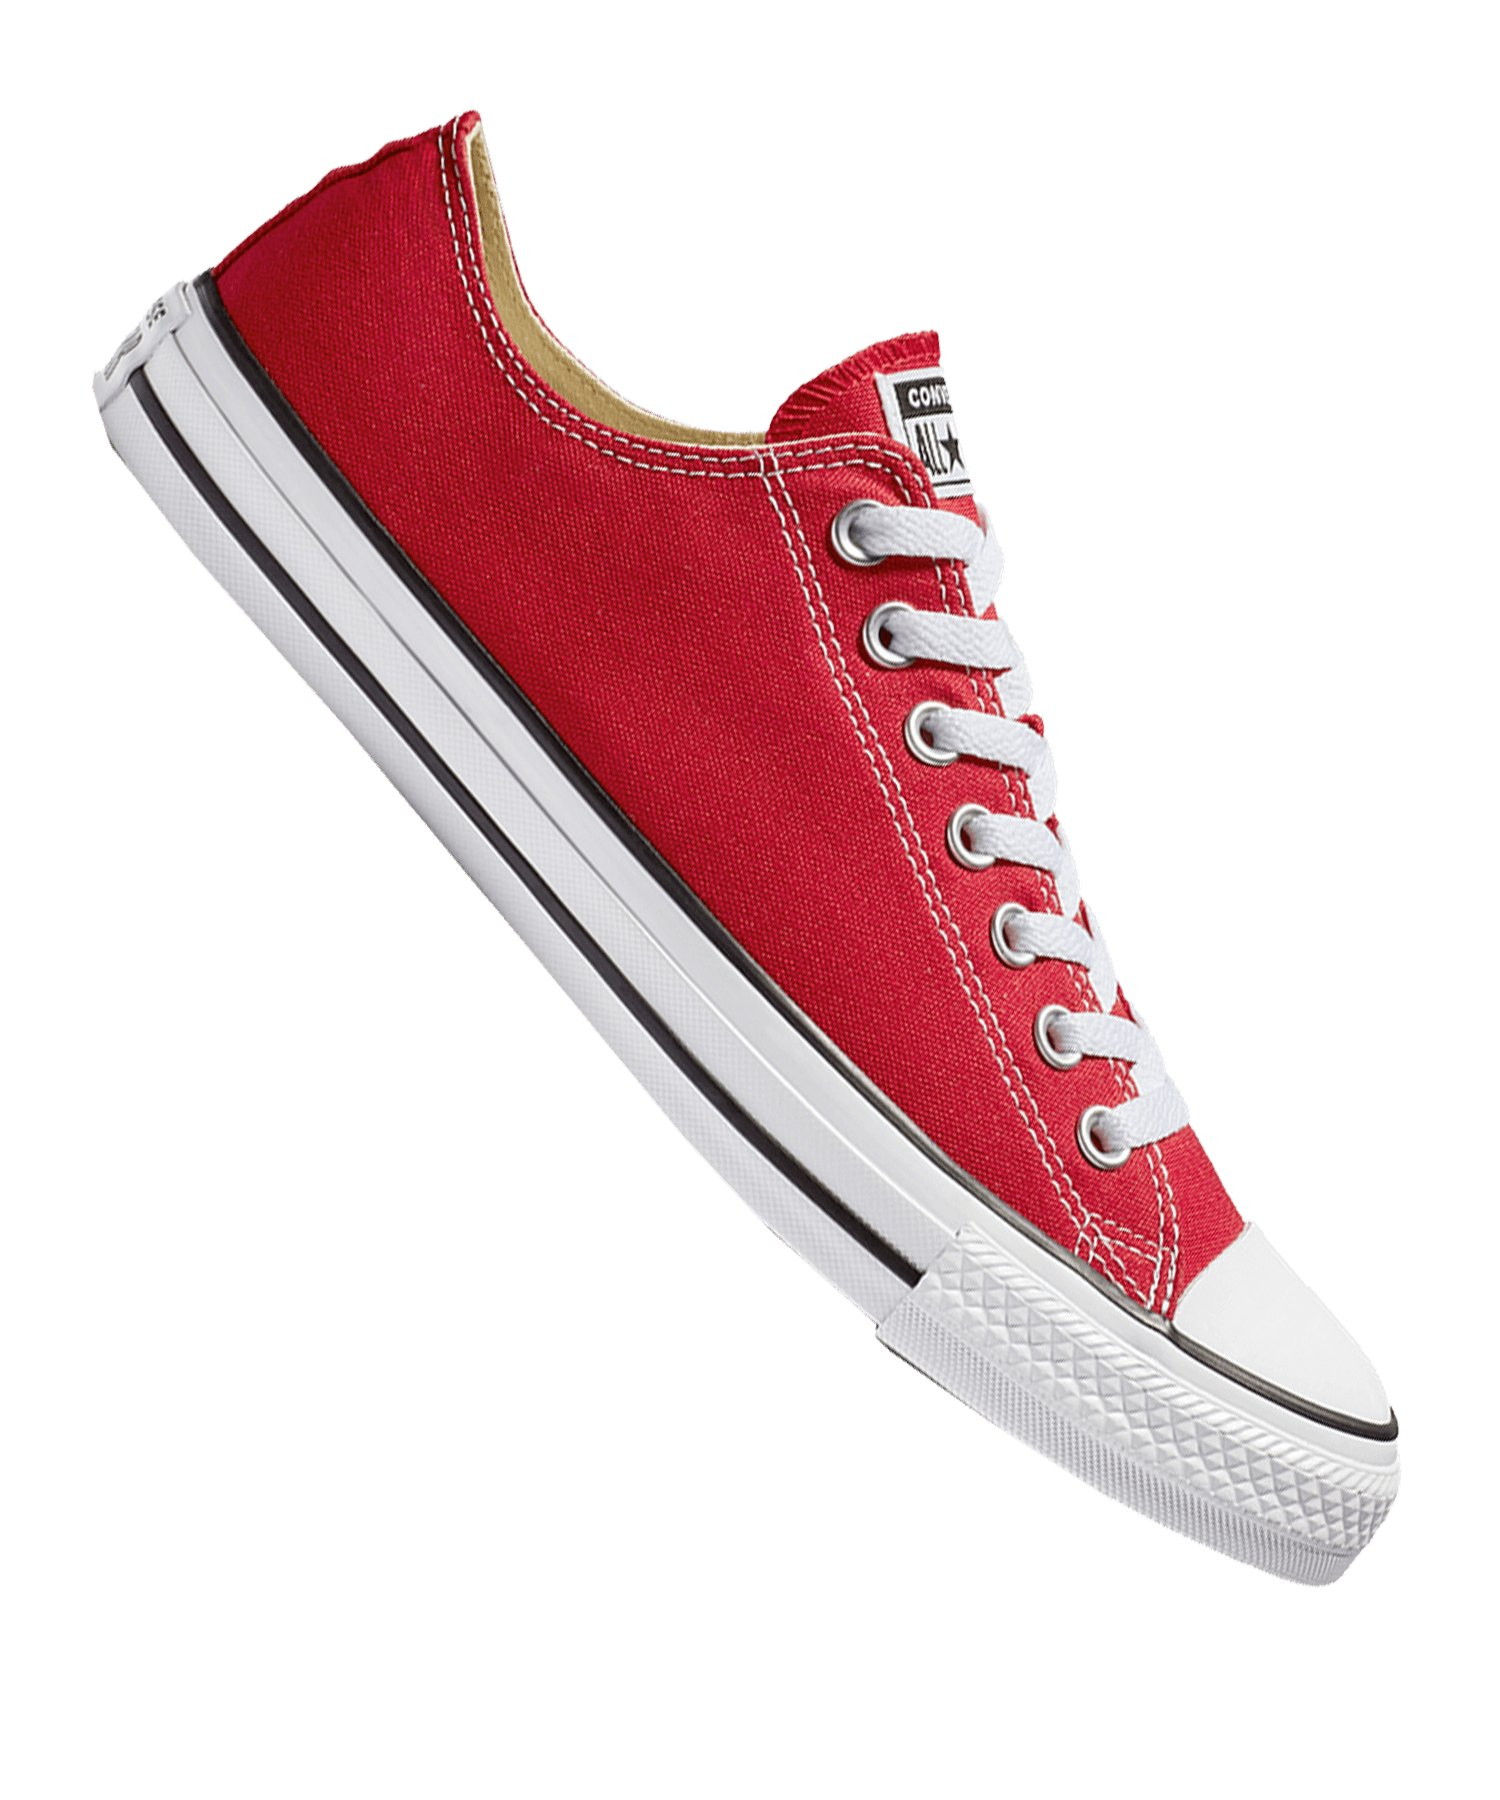 Converse All Star OX Sneaker Rot - rot